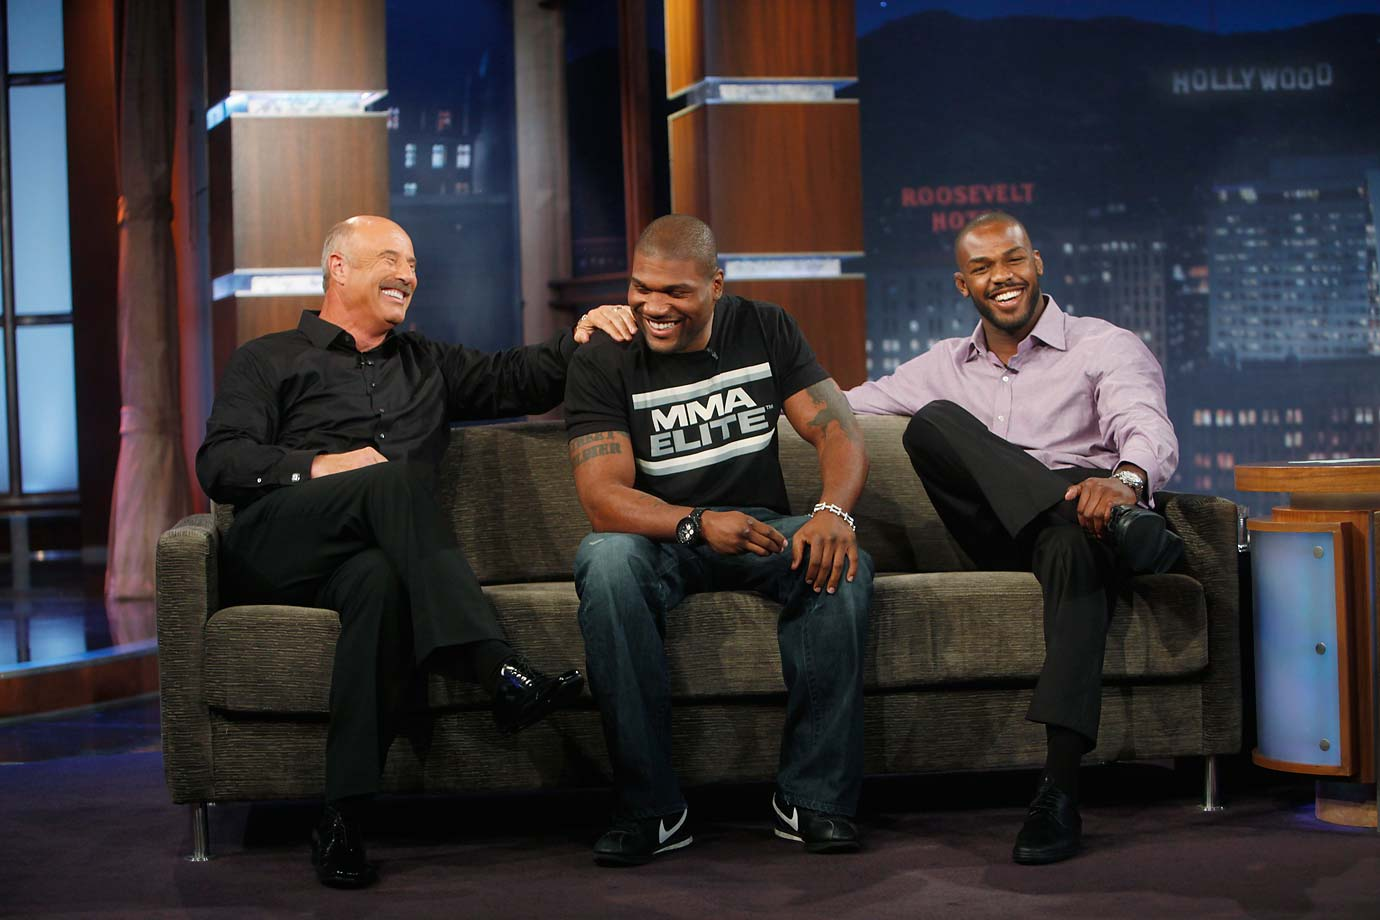 Jon Jones and Rampage Jackson on The Jimmy Kimmel Show ahead of their main event fight at UFC 135. Also pictured is Dr. Phil.